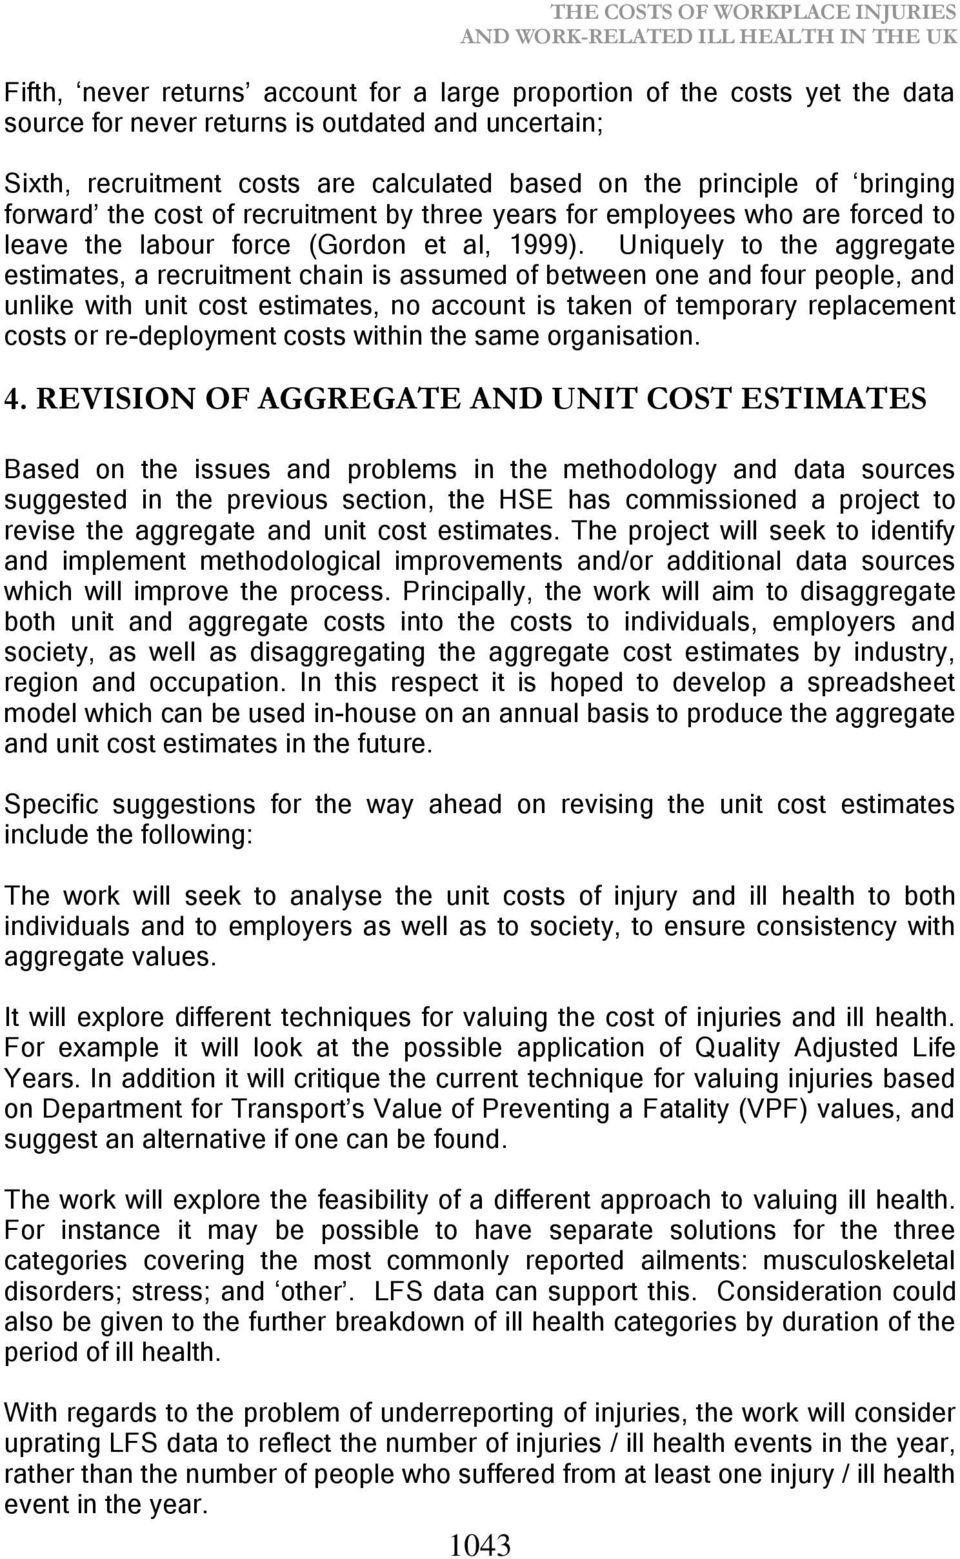 Uniquely to the aggregate estimates, a recruitment chain is assumed of between one and four people, and unlike with unit cost estimates, no account is taken of temporary replacement costs or